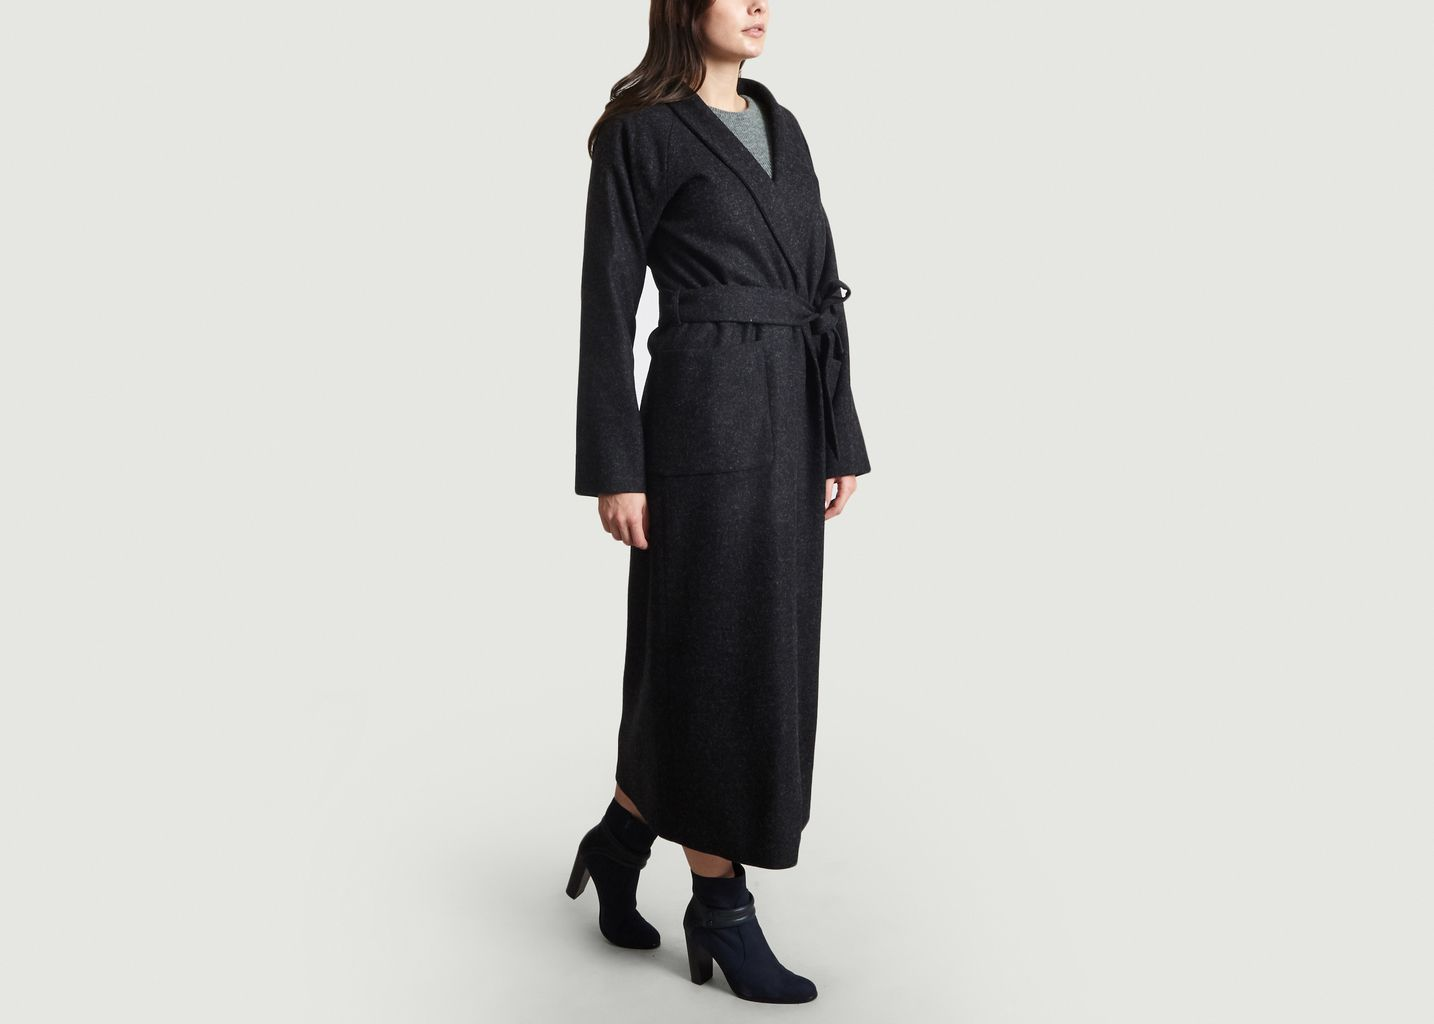 22930cd26ad3 Manteau Peignoir Noir agnès b.   L Exception